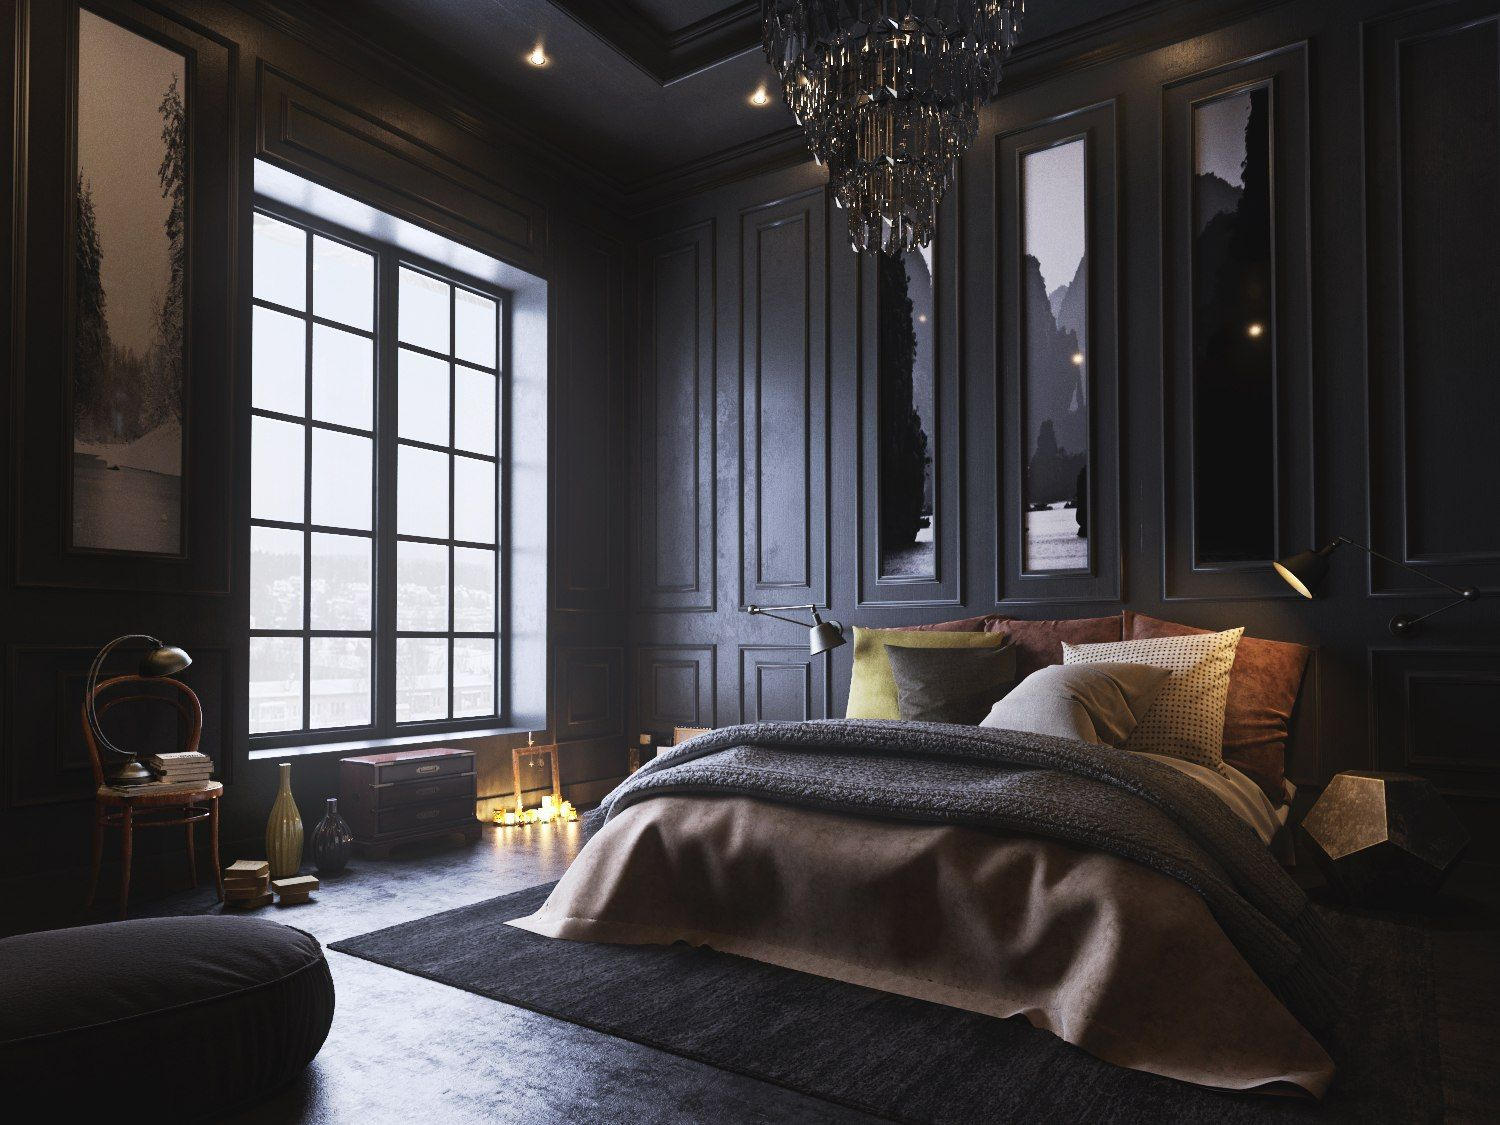 Black Modern Big Window Bedroom View Luxurious Bedrooms Bedroom Design Bedroom Interior